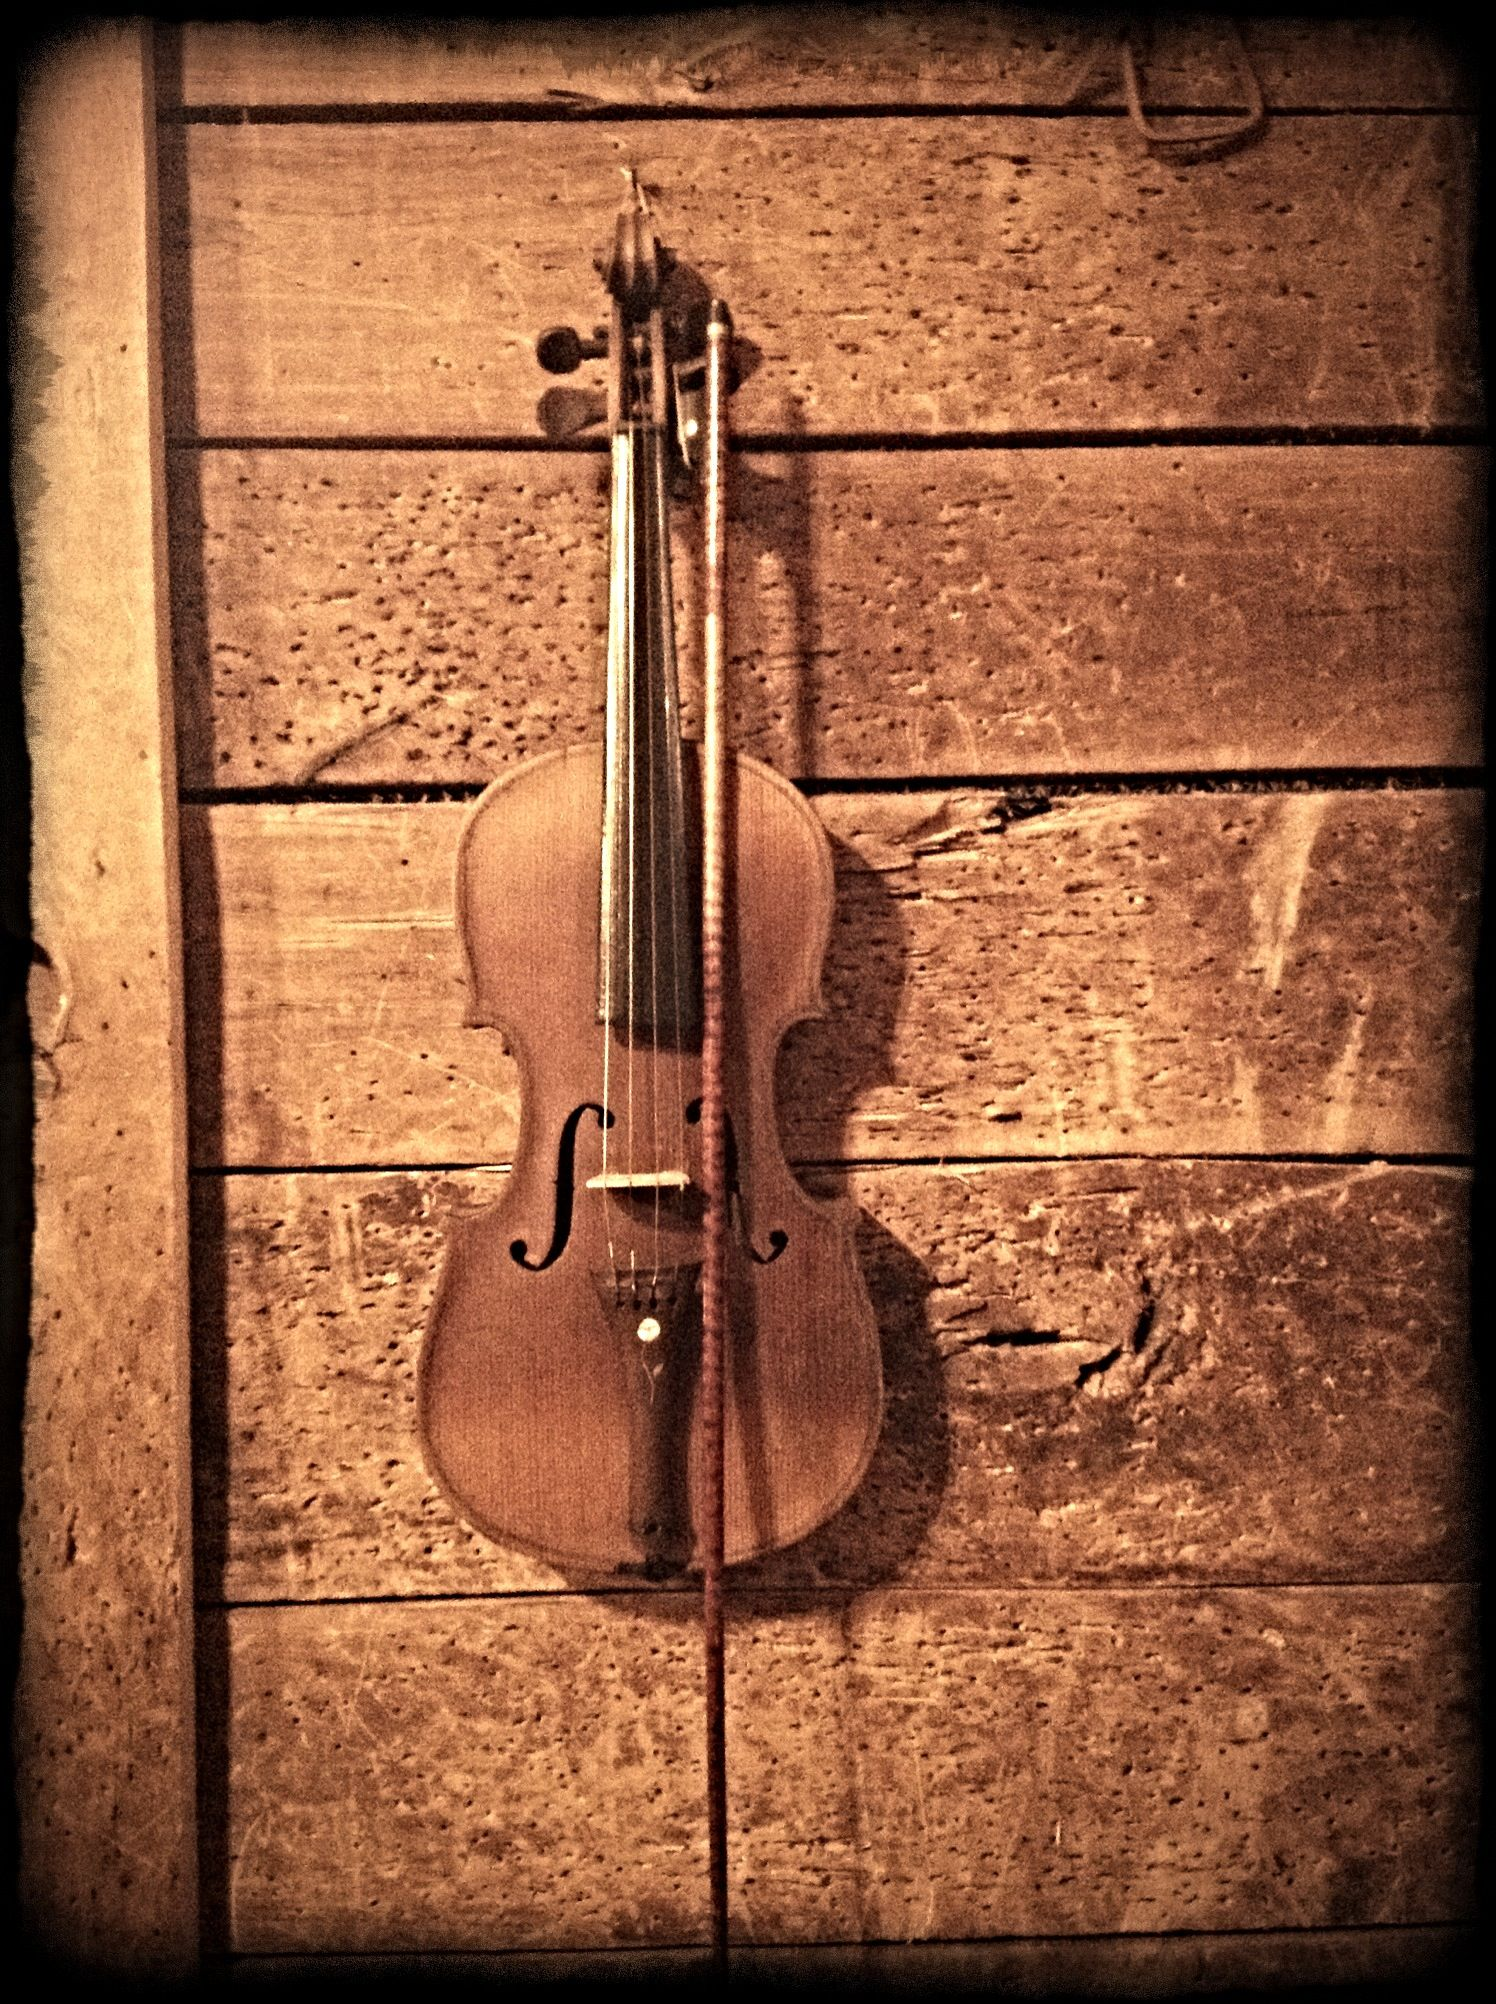 What's found on Colonel's walls reflect his admiration for vintage and musical - like this fiddle. #Fiddle